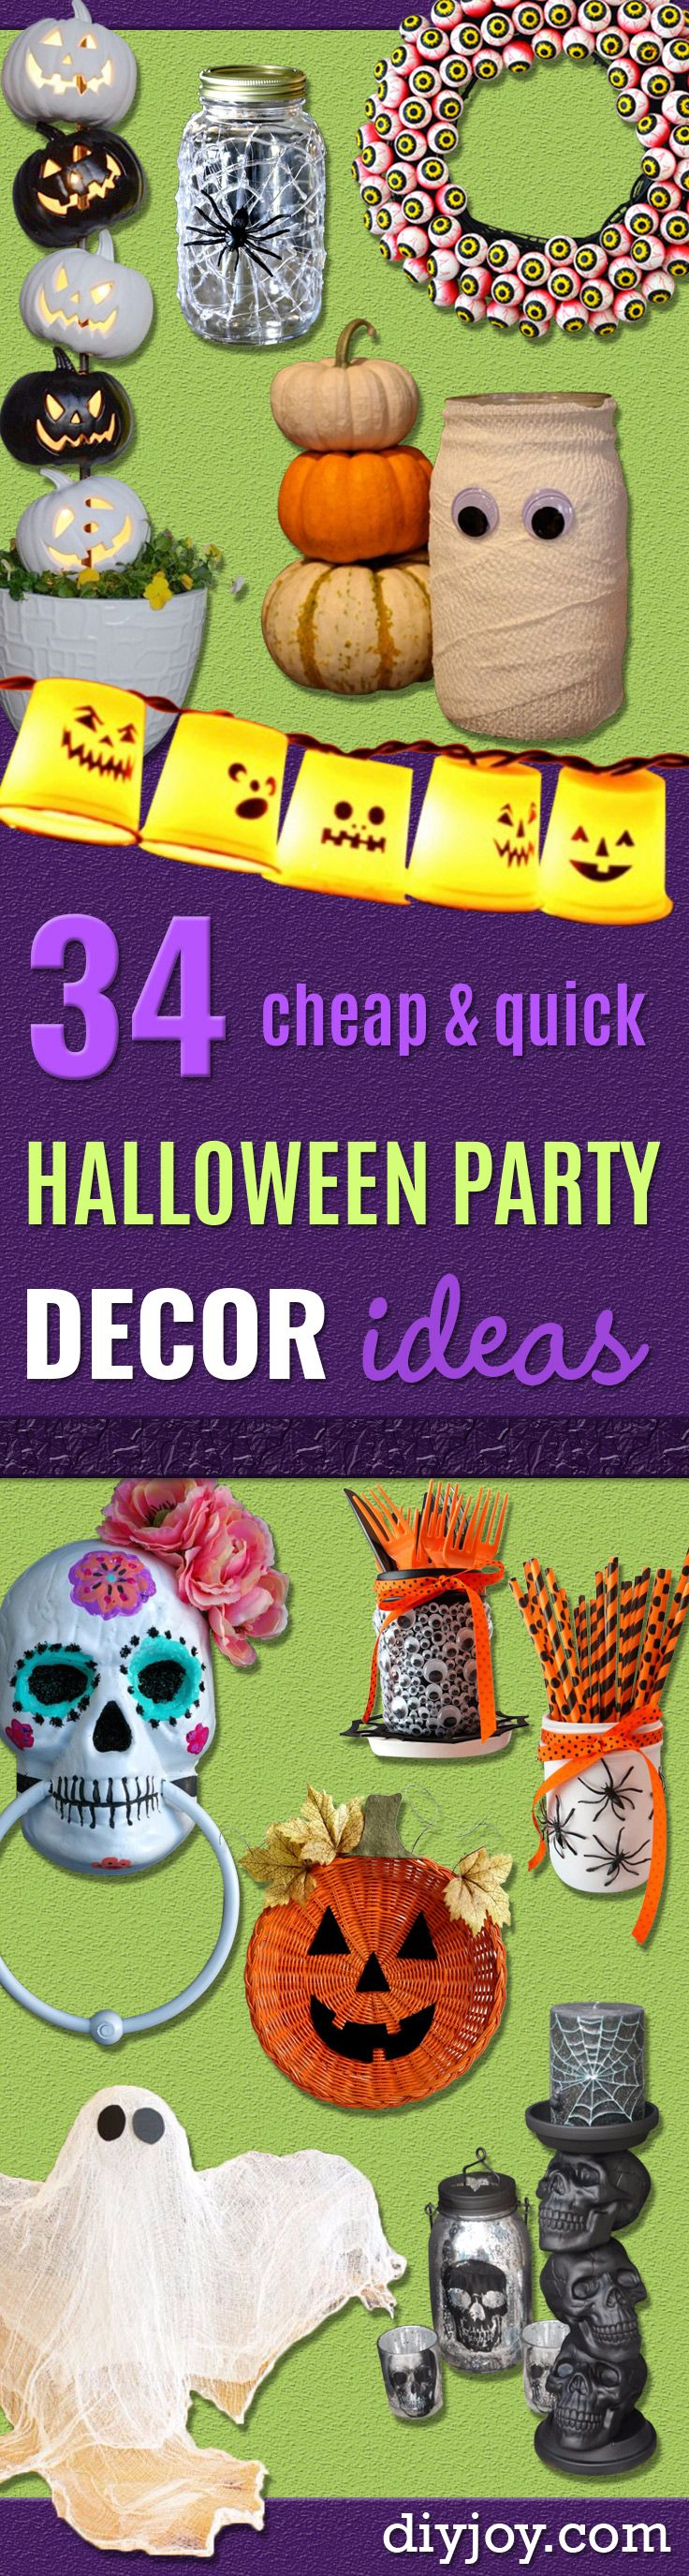 34 Inexpensive DIY Halloween Party Decor Ideas